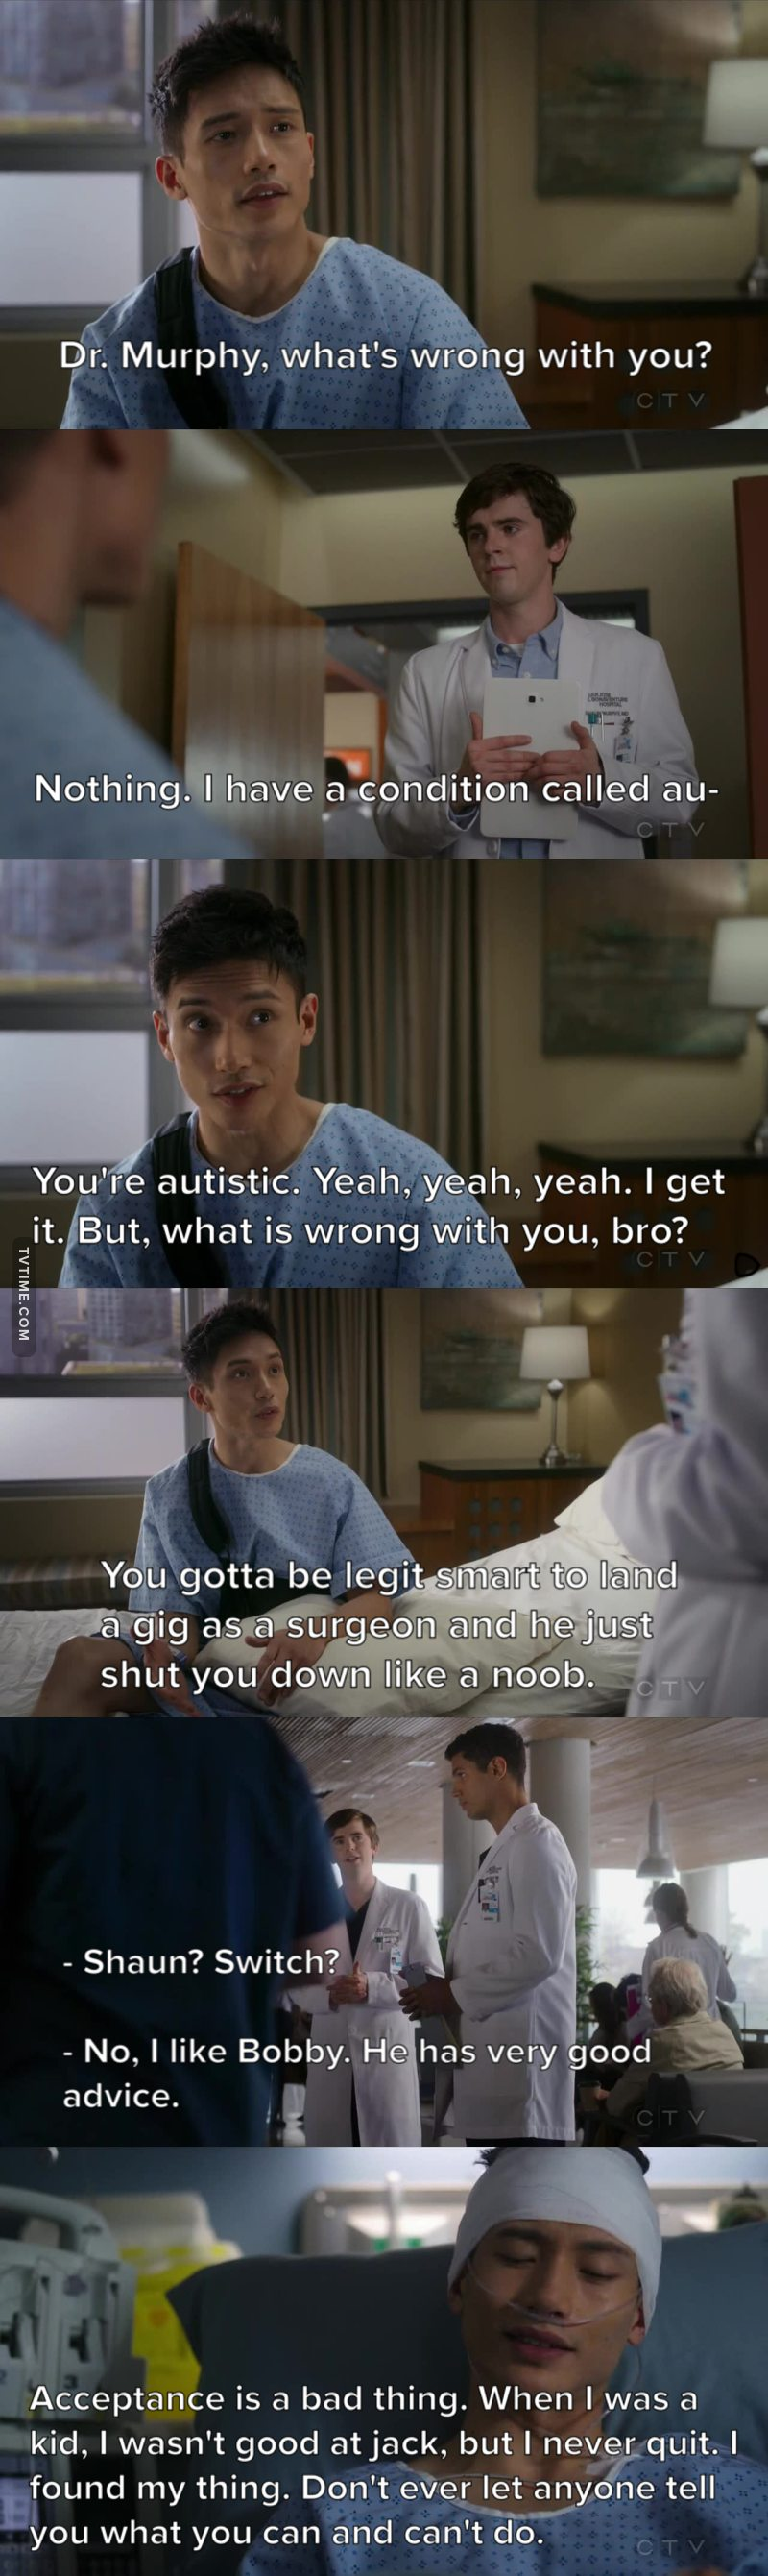 Personality of Jason, advice from Jianyu. 😄  (The Good Doctor meets The Good Place)